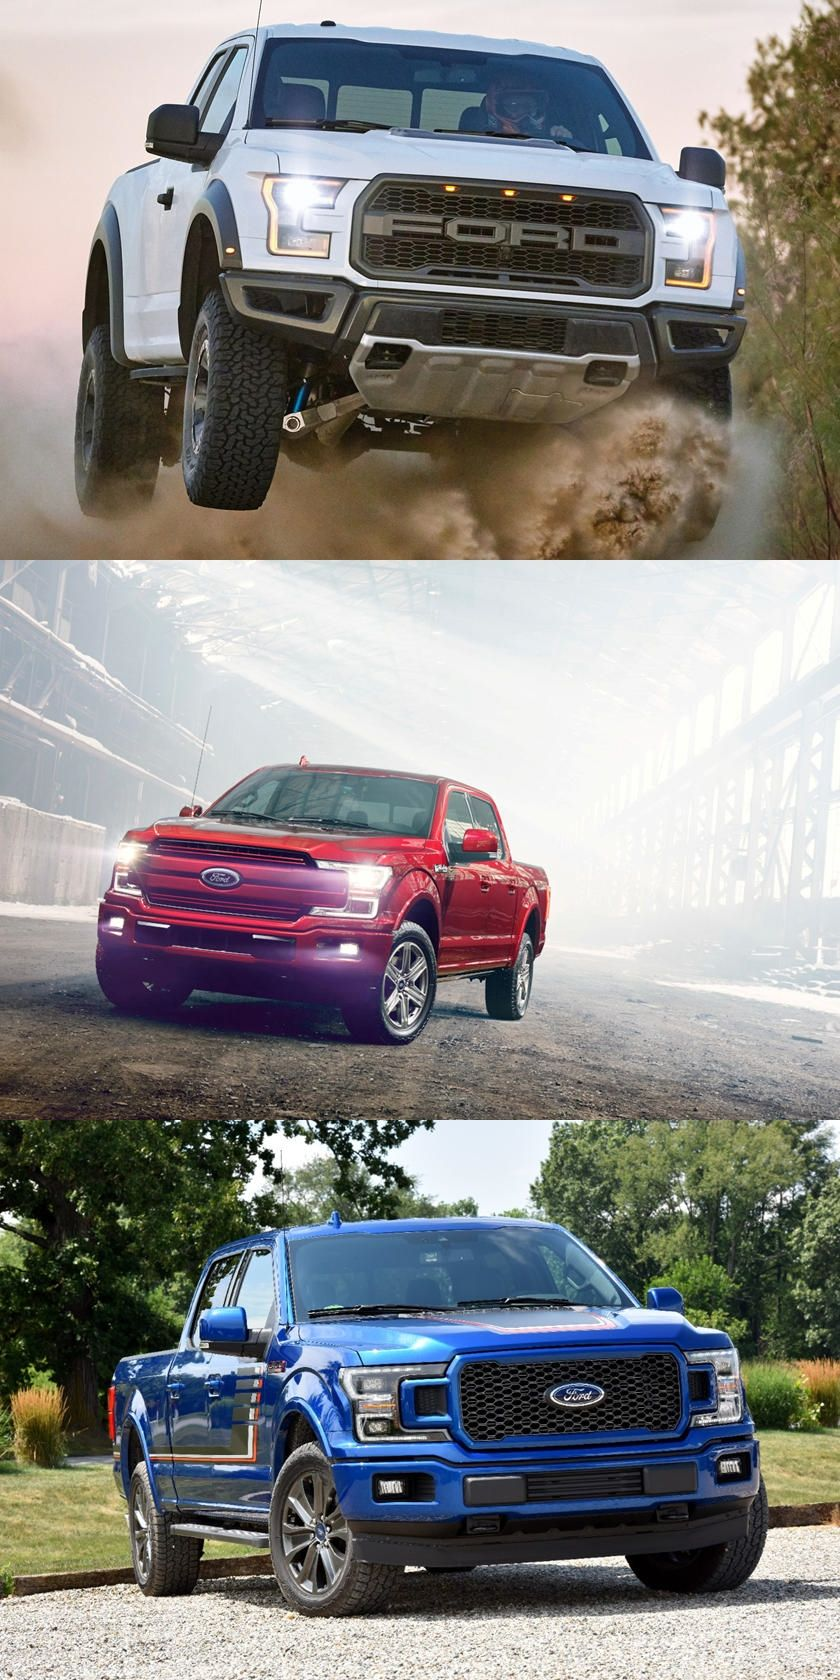 These Are All The Colors For The All New 2021 Ford F 150 One Company Seems To Have Revealed The Exterior Color Palette F In 2020 Ford F150 Exterior Color Palette Ford